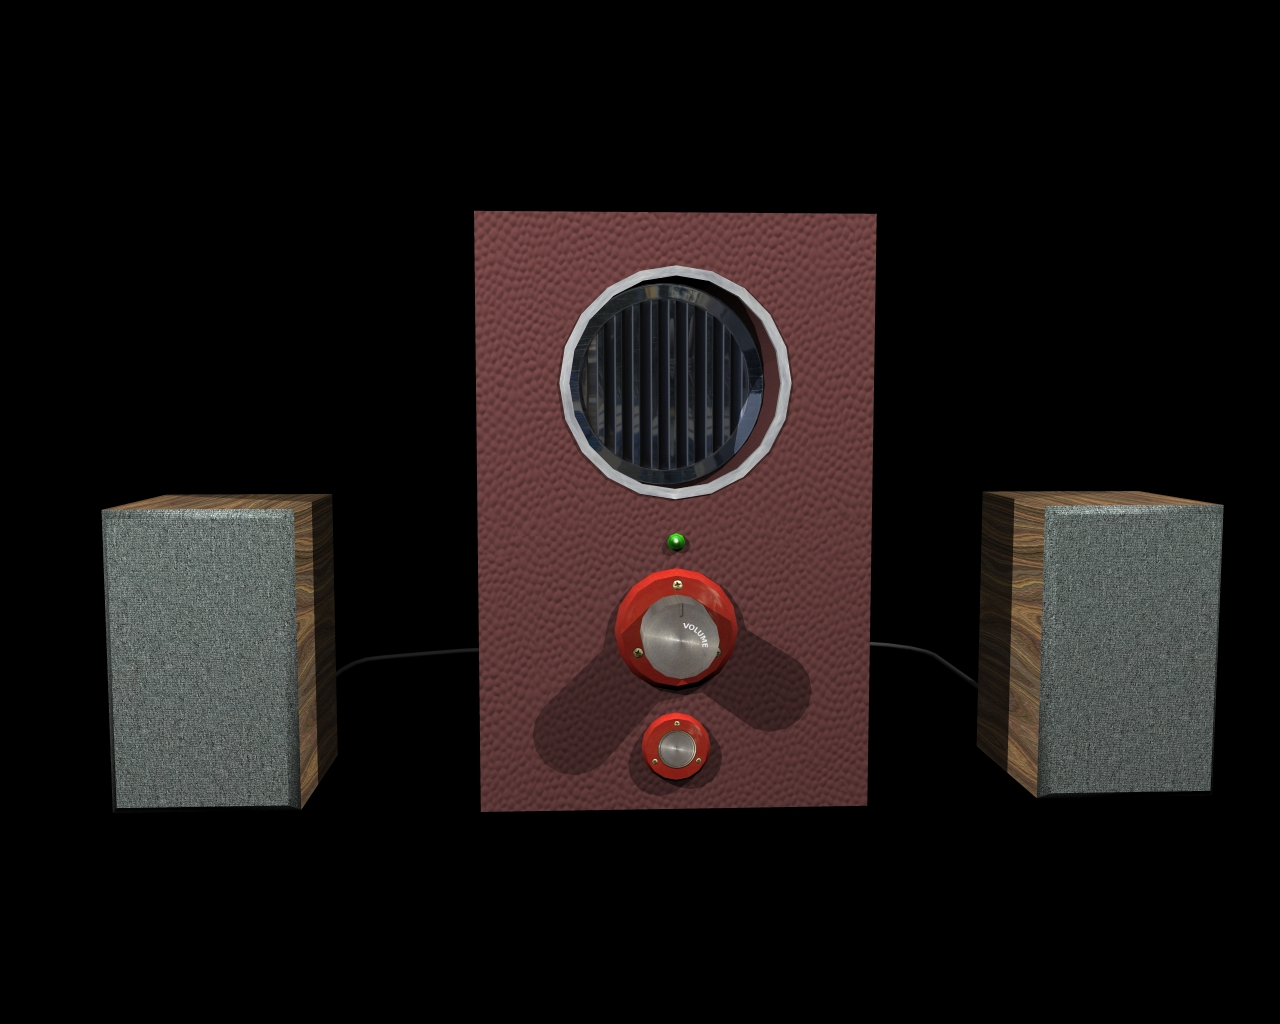 speakers 2 in 1 3d model 3ds 164299